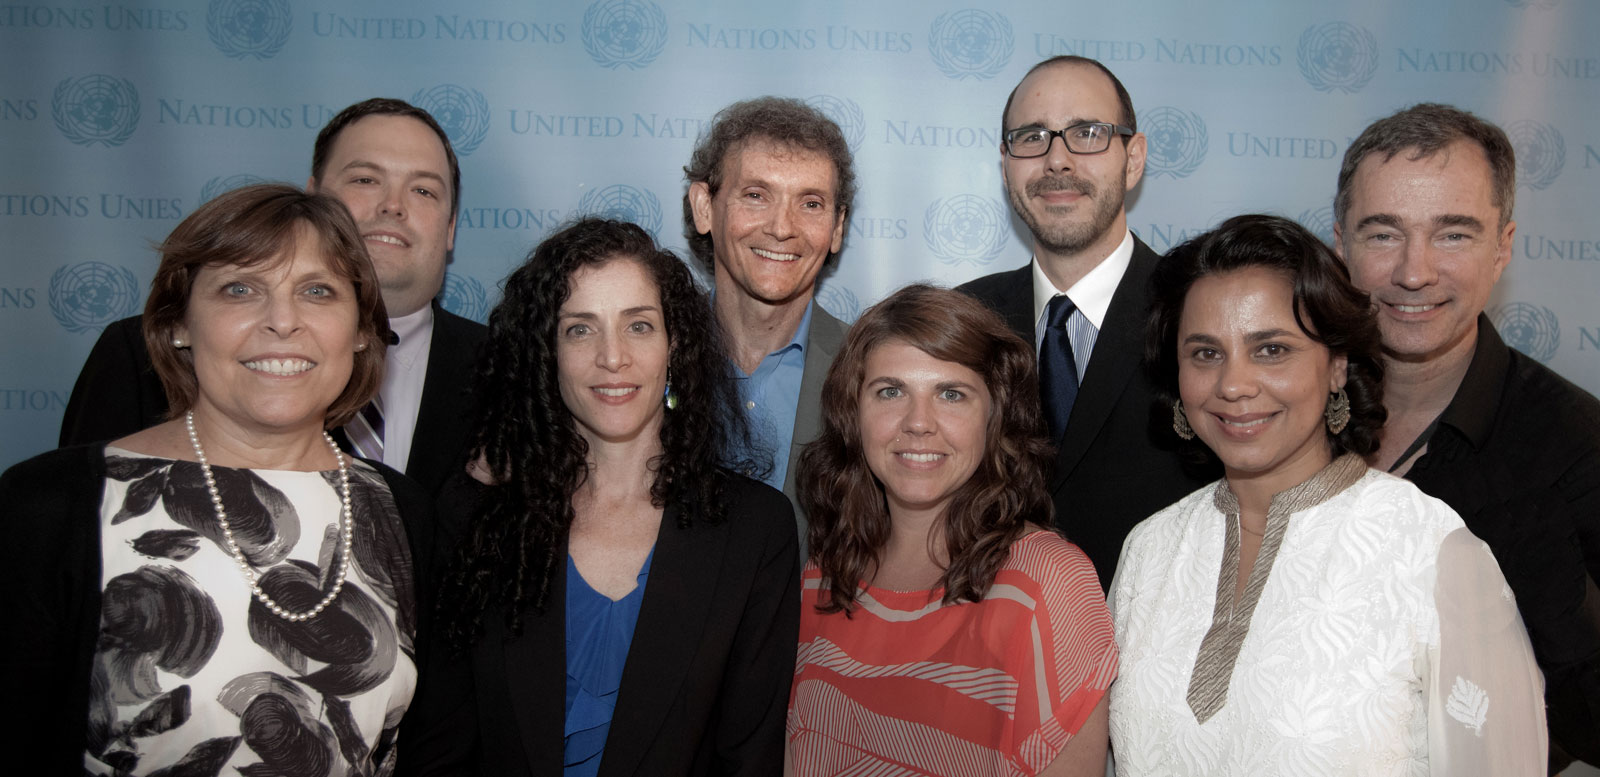 Top L to R: Justin Stockton, Chet Cooper, Marcel Bucsescu and John McMahon Bottom L to R: Paula Pearlman, Maya Sabatello (ABILITY Awareness Board Member), Jessica Devaney and Salma Hasan Ali